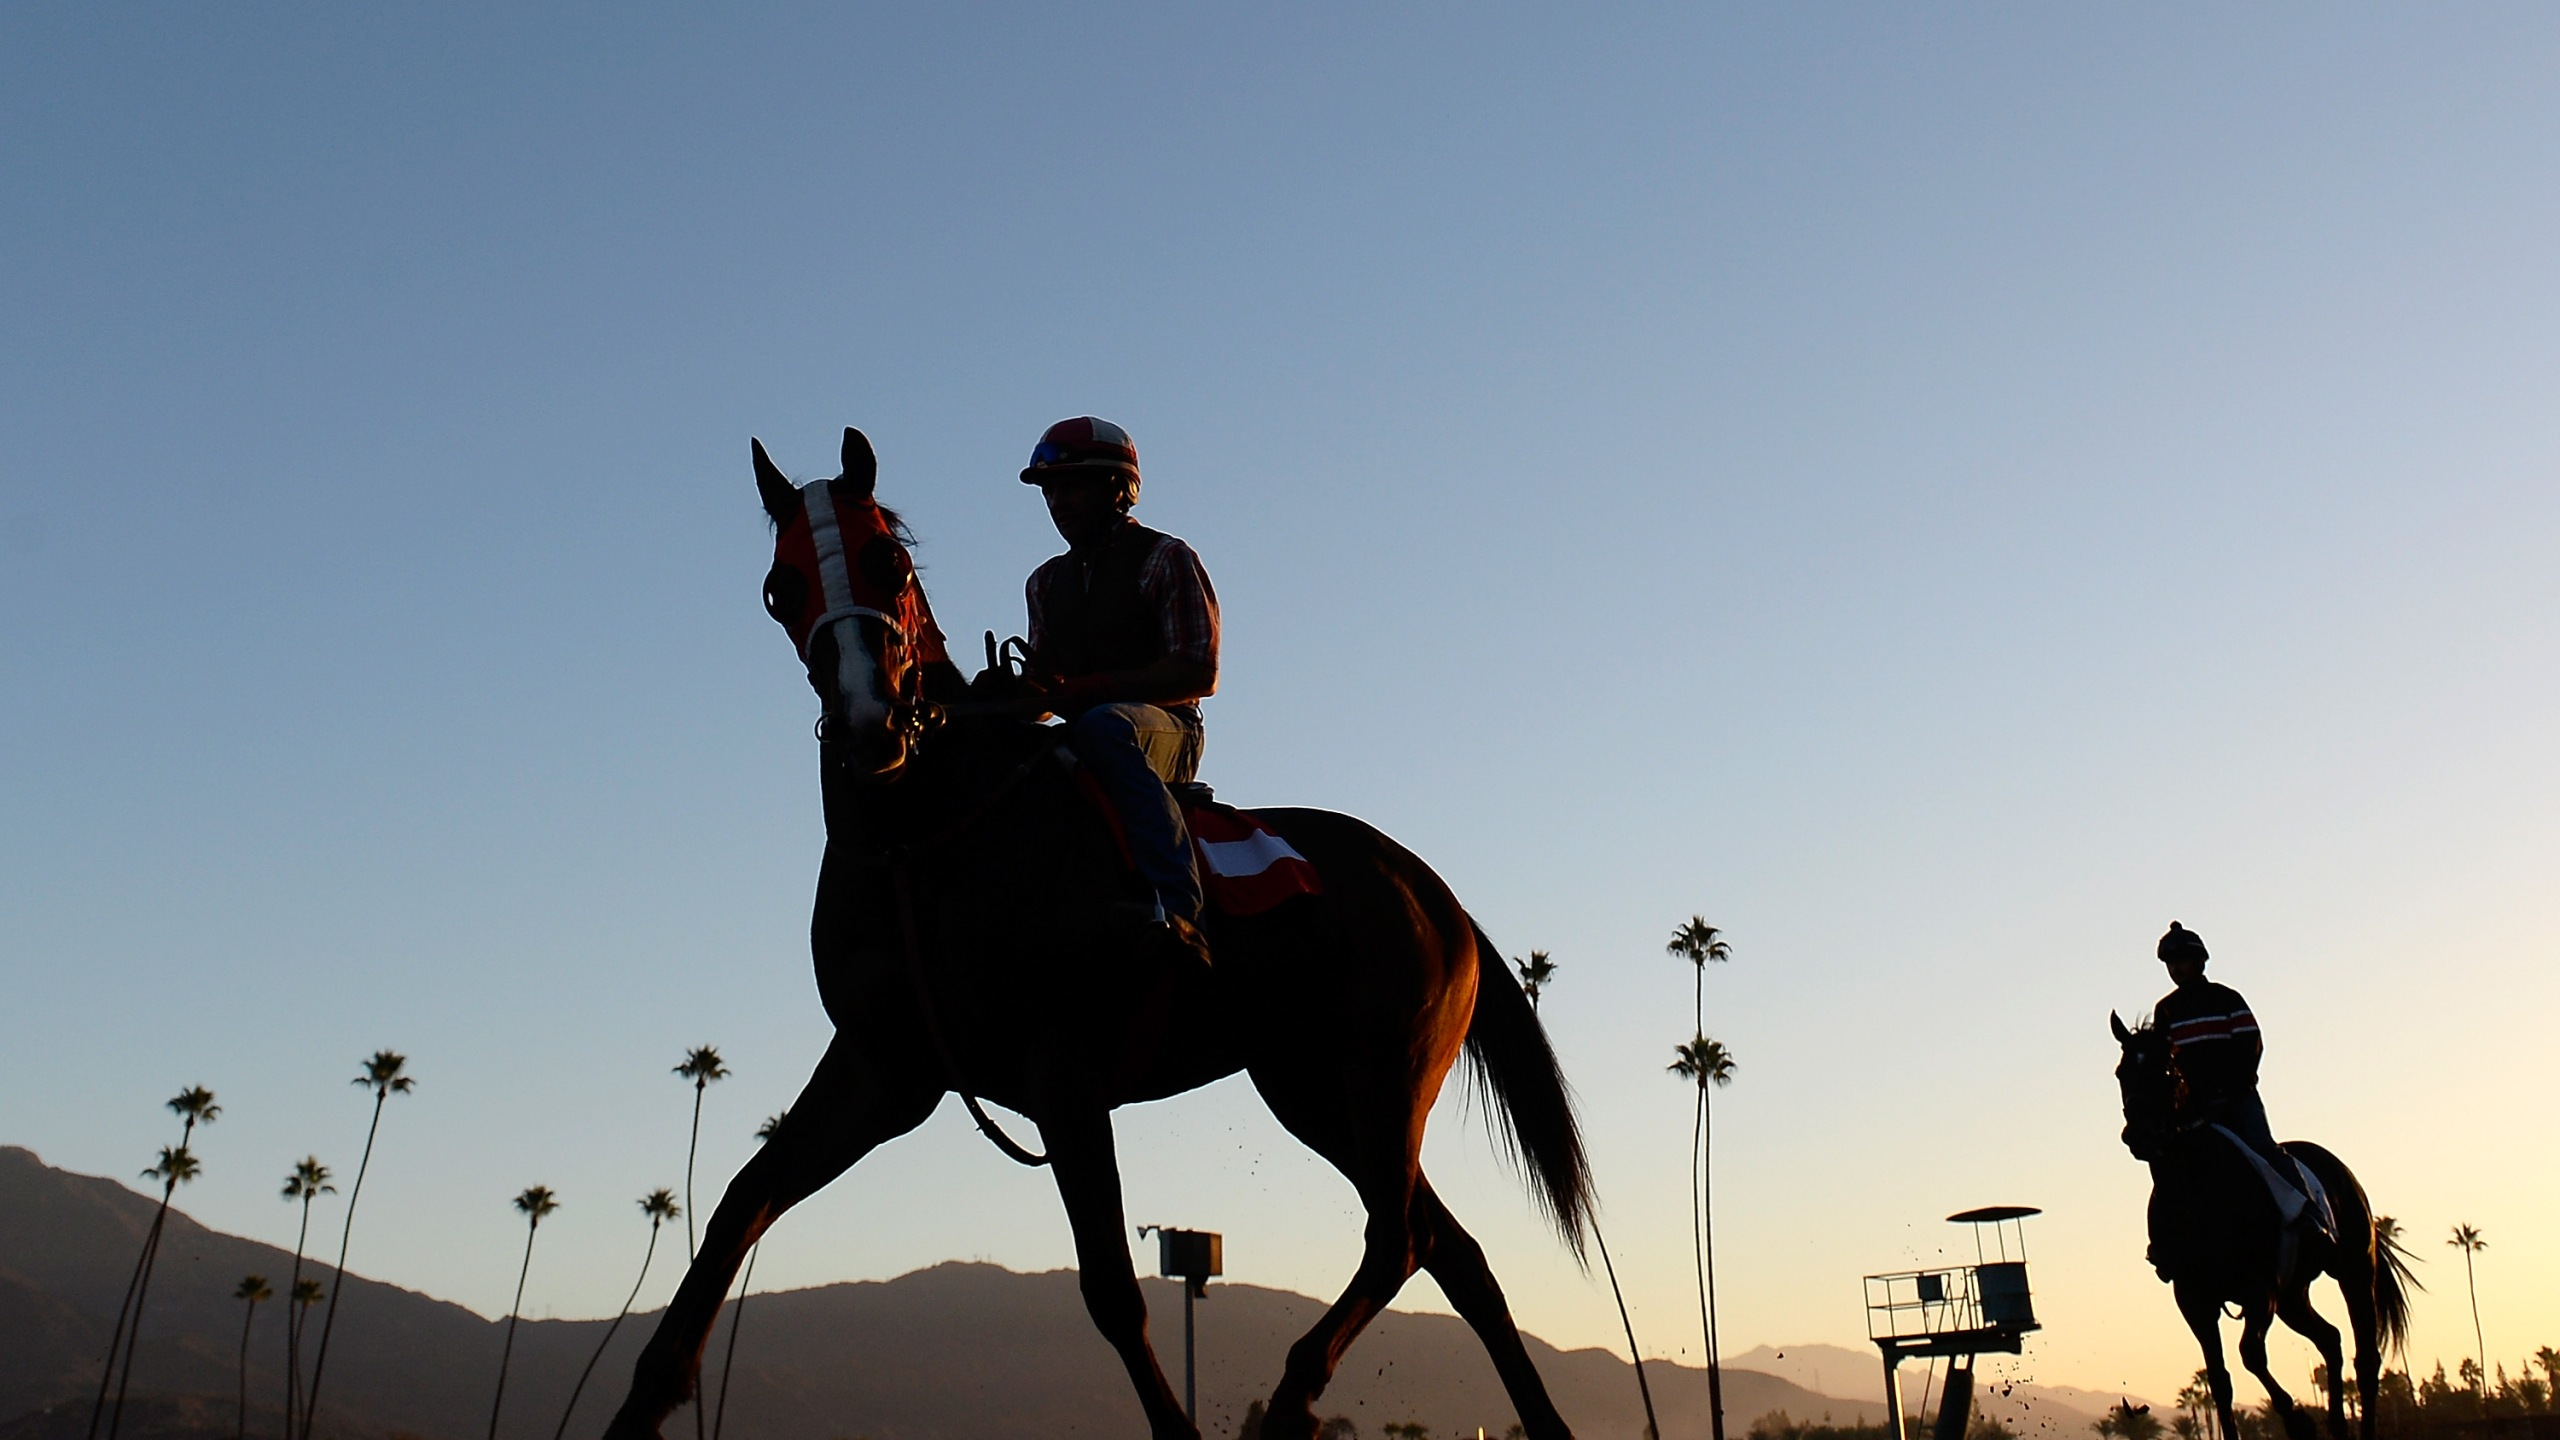 Horses train in preparation for the 2014 Breeder's Cup at Santa Anita Park on October 29, 2014 in Arcadia, California. (Credit: Harry How/Getty Images)